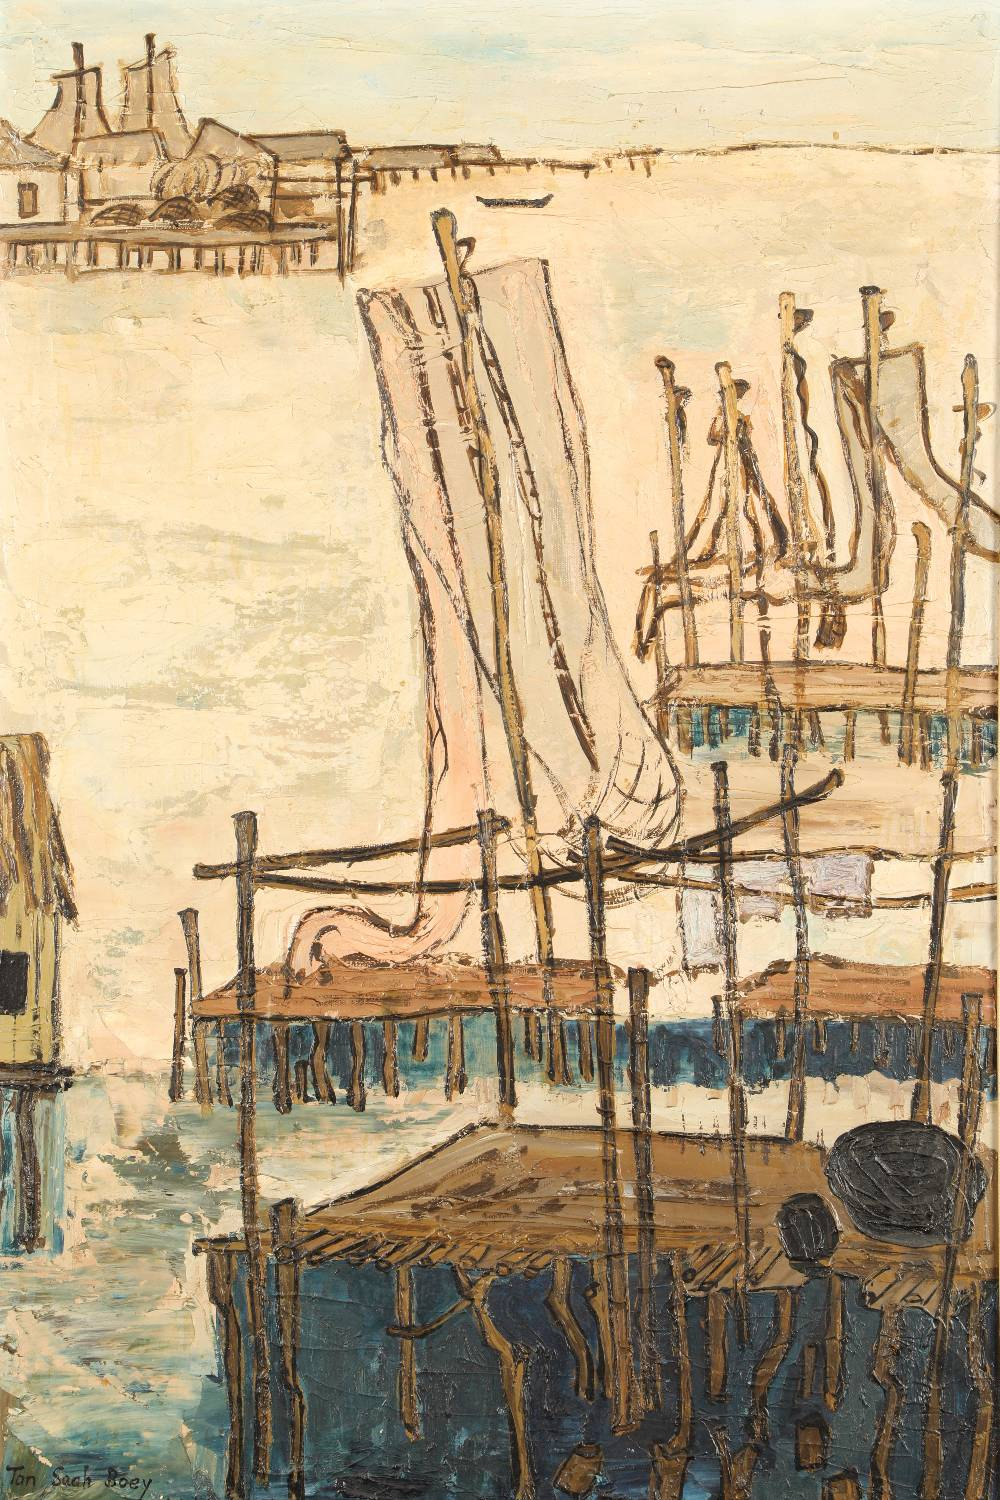 Chen Cheng (Born 1927) ARR Framed oil on canvas, signed Tan Seah Boey dated 1961 'Fishing Village'